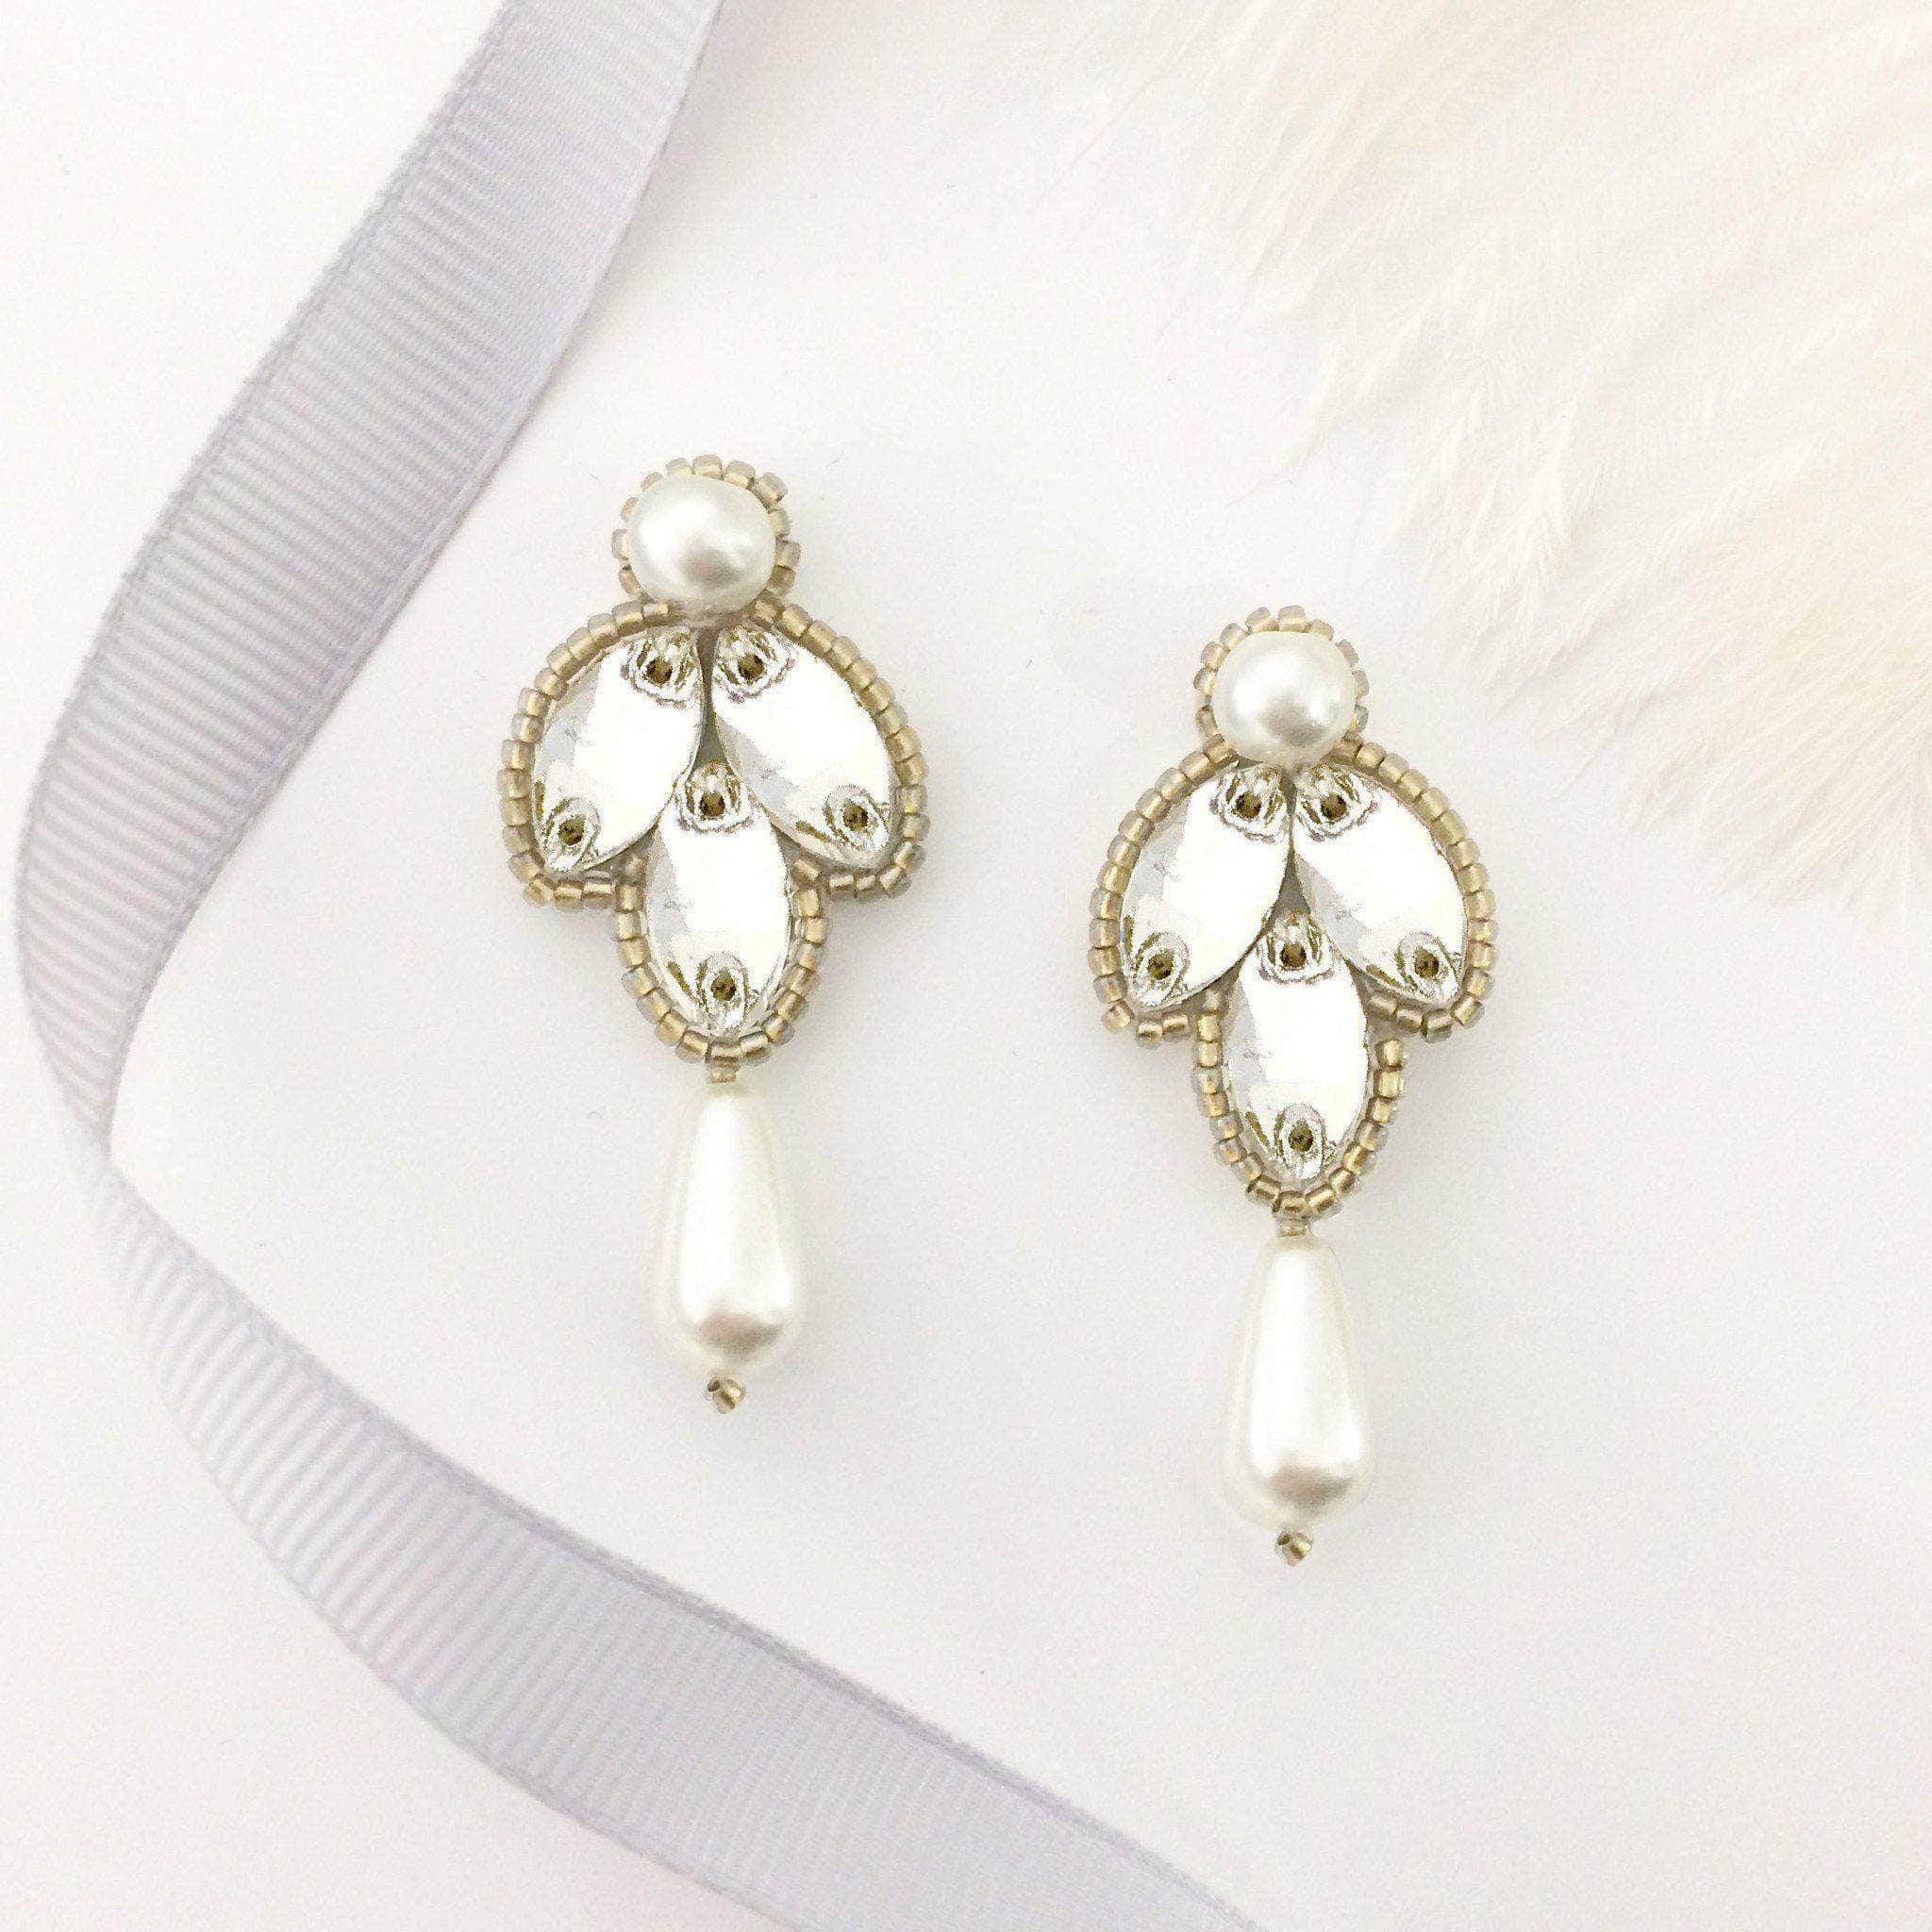 pearl desires yellow gold s girl by mikolay little products earring real stud girls flower